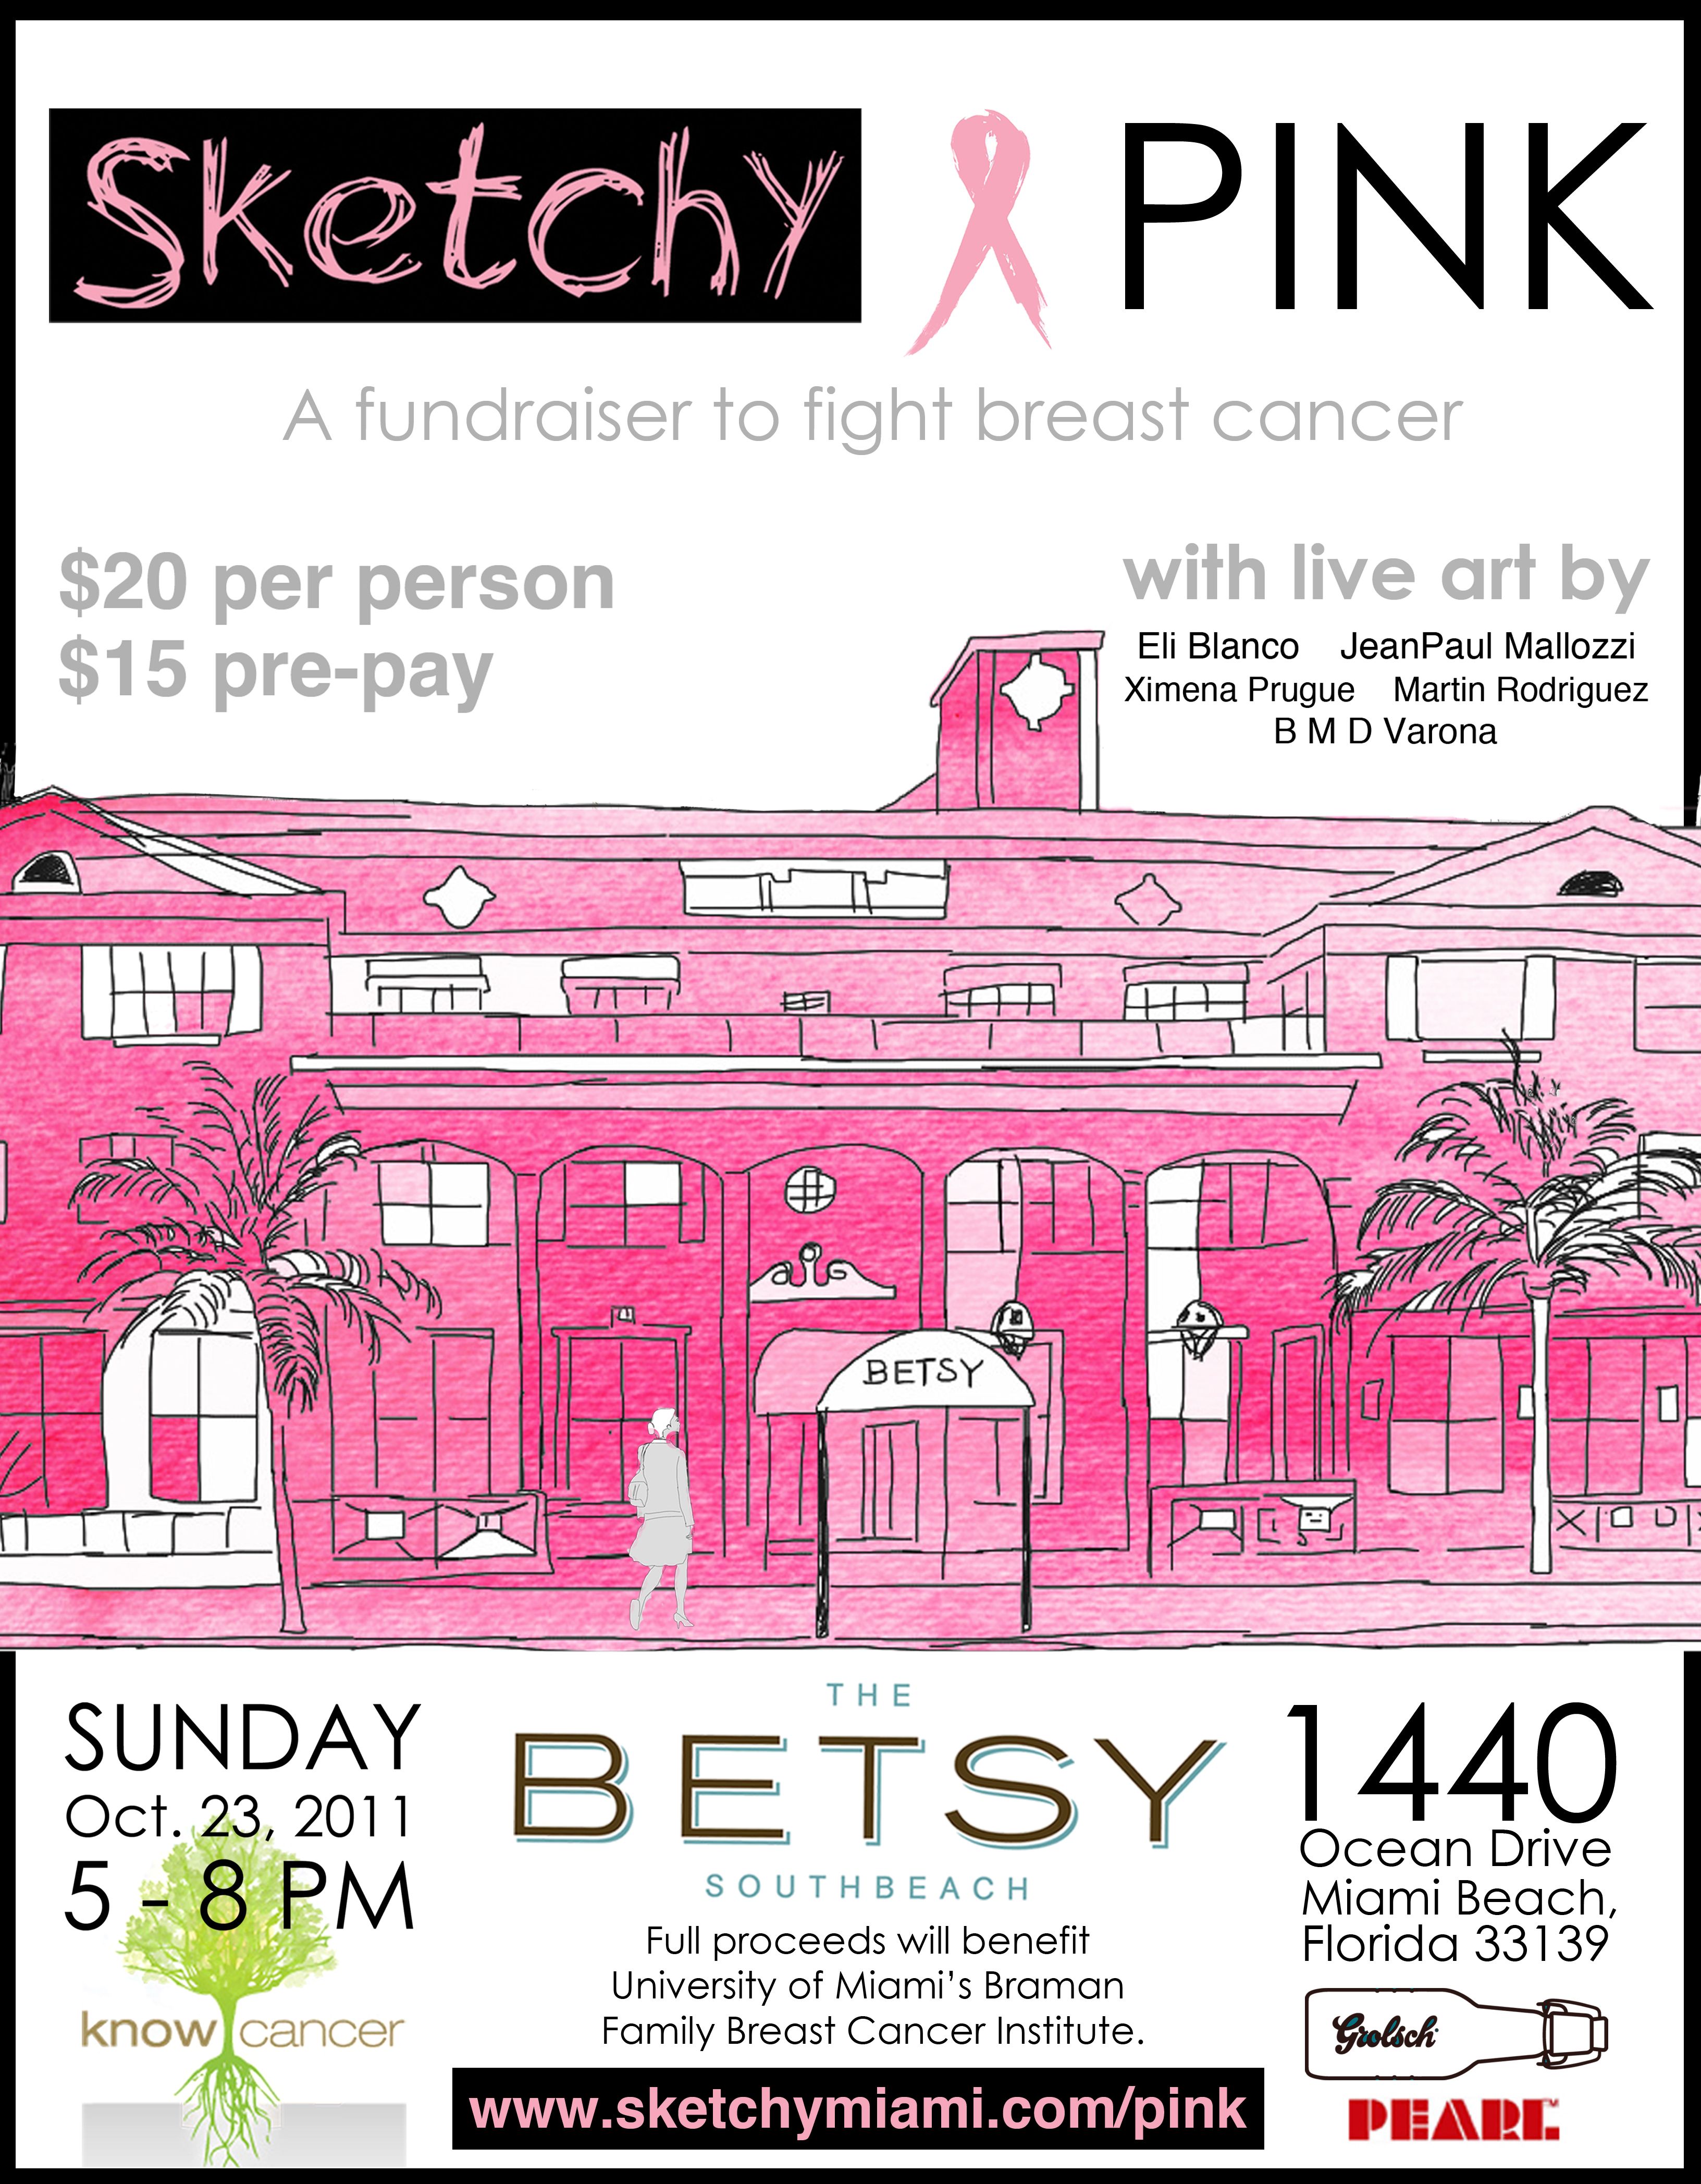 Sketchy Pink and Betsy South Beach Support the Pink Cause with a Fundraiser Sunday, October 23